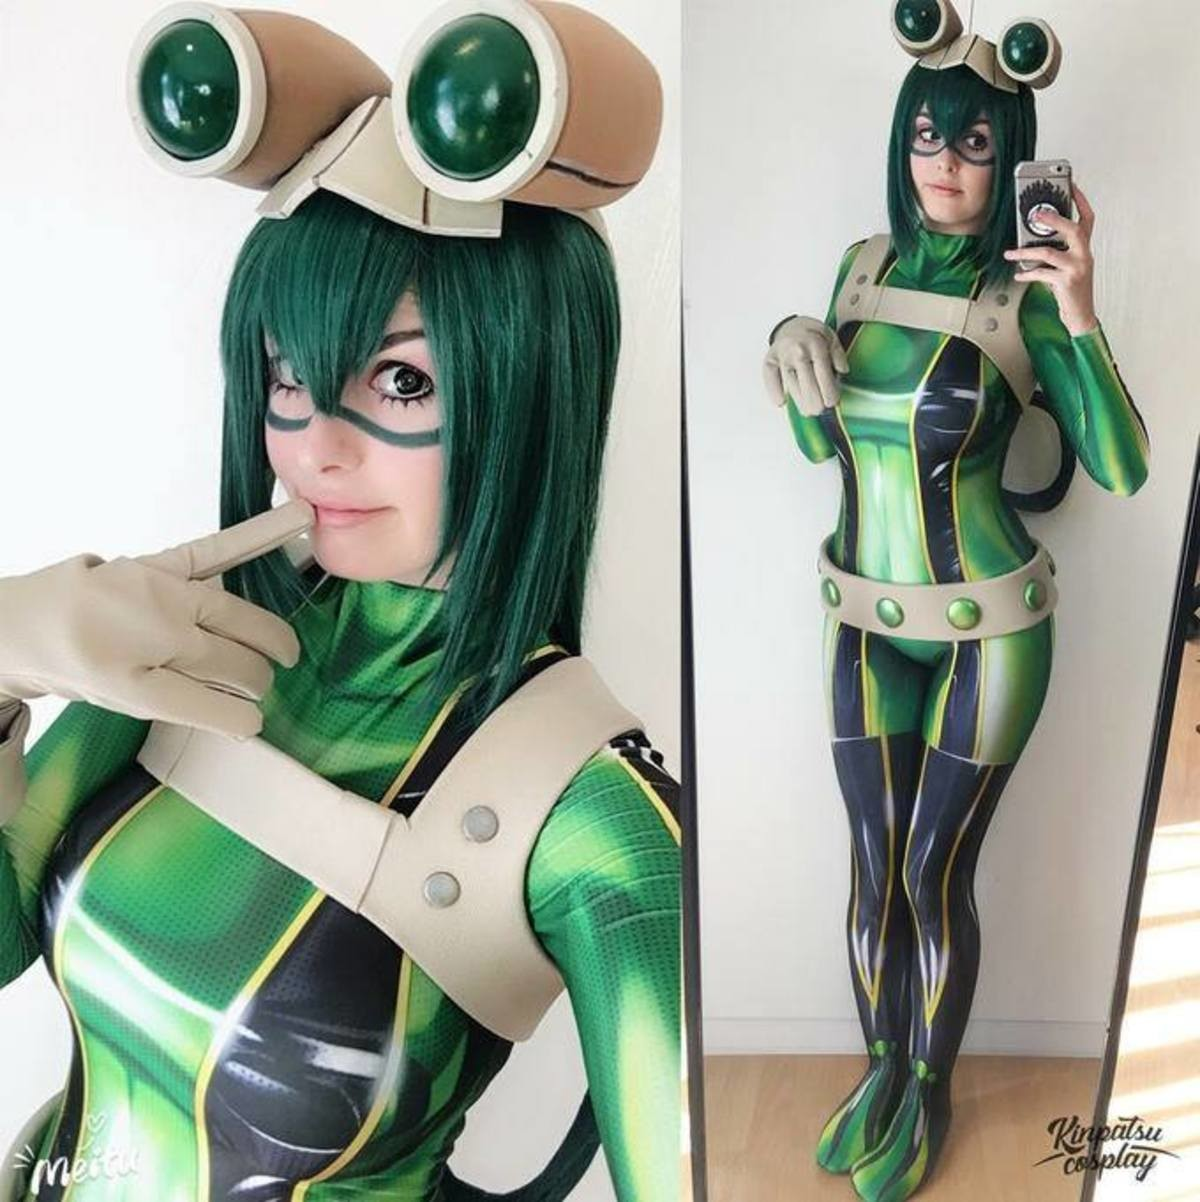 3D Tsuyu. join list: 3DLewds (791 subs)Mention History join list:. That's a cute frog.